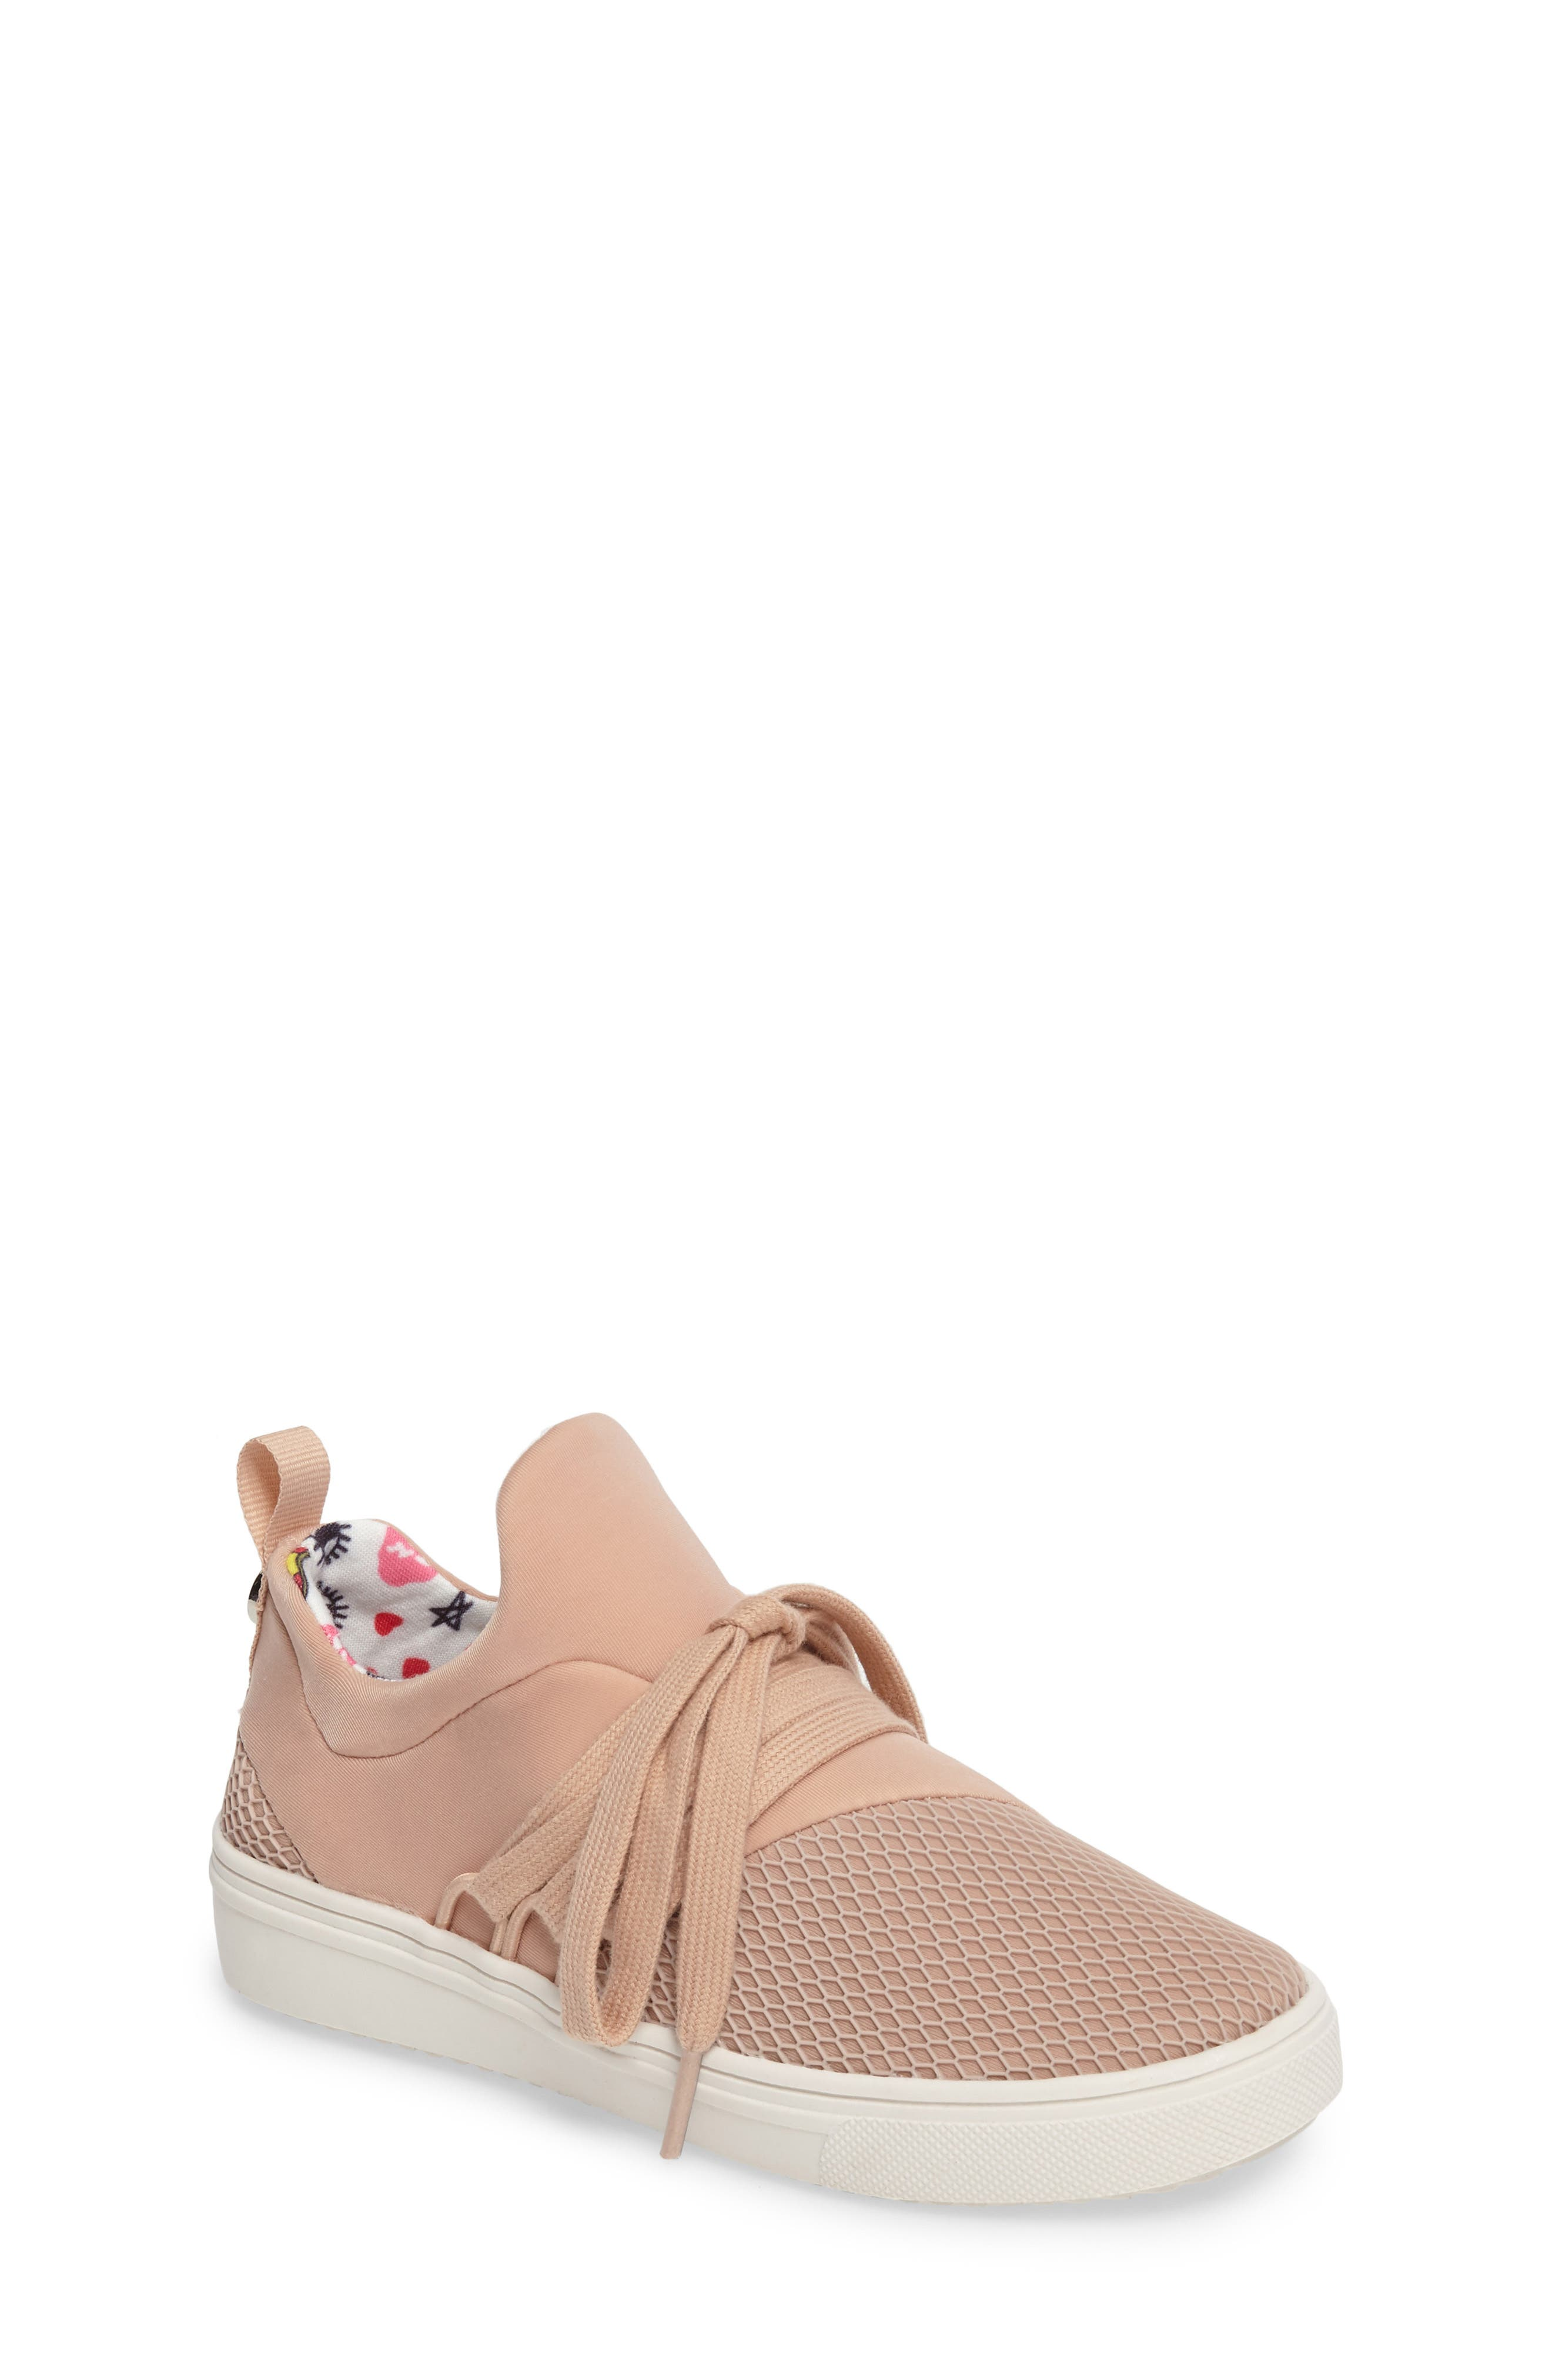 Lancer Mesh Sock-Fit Sneaker,                         Main,                         color, Blush